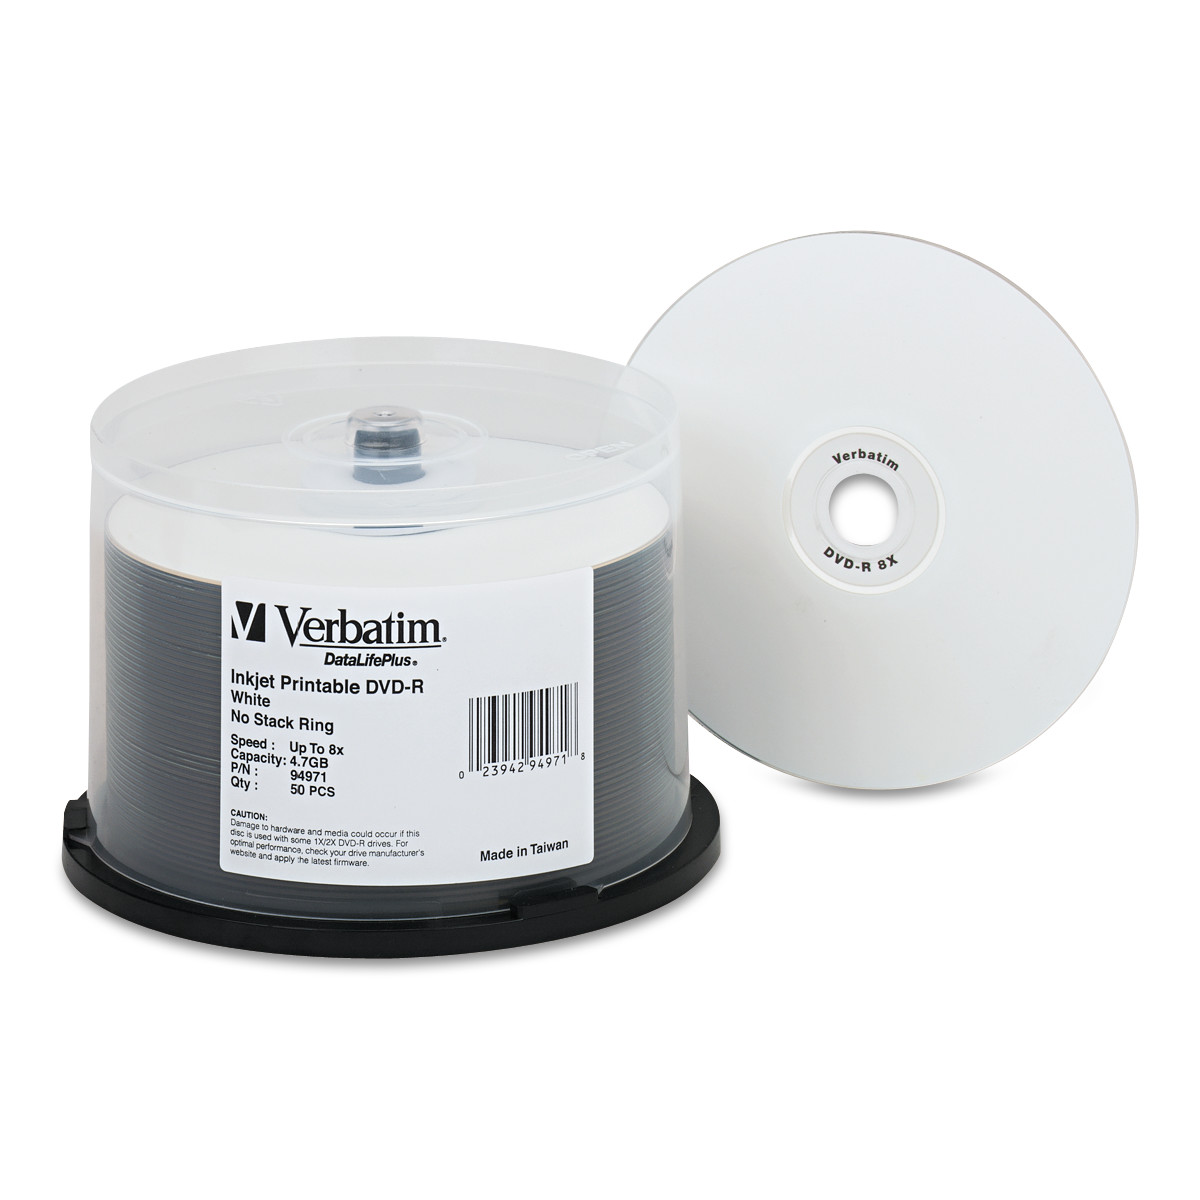 image relating to Printable Dvd Discs referred to as Verbatim DVD-R Discs 4.7GB 8X DataLifePlus White Inkjet Printable, 50/PK Spindle